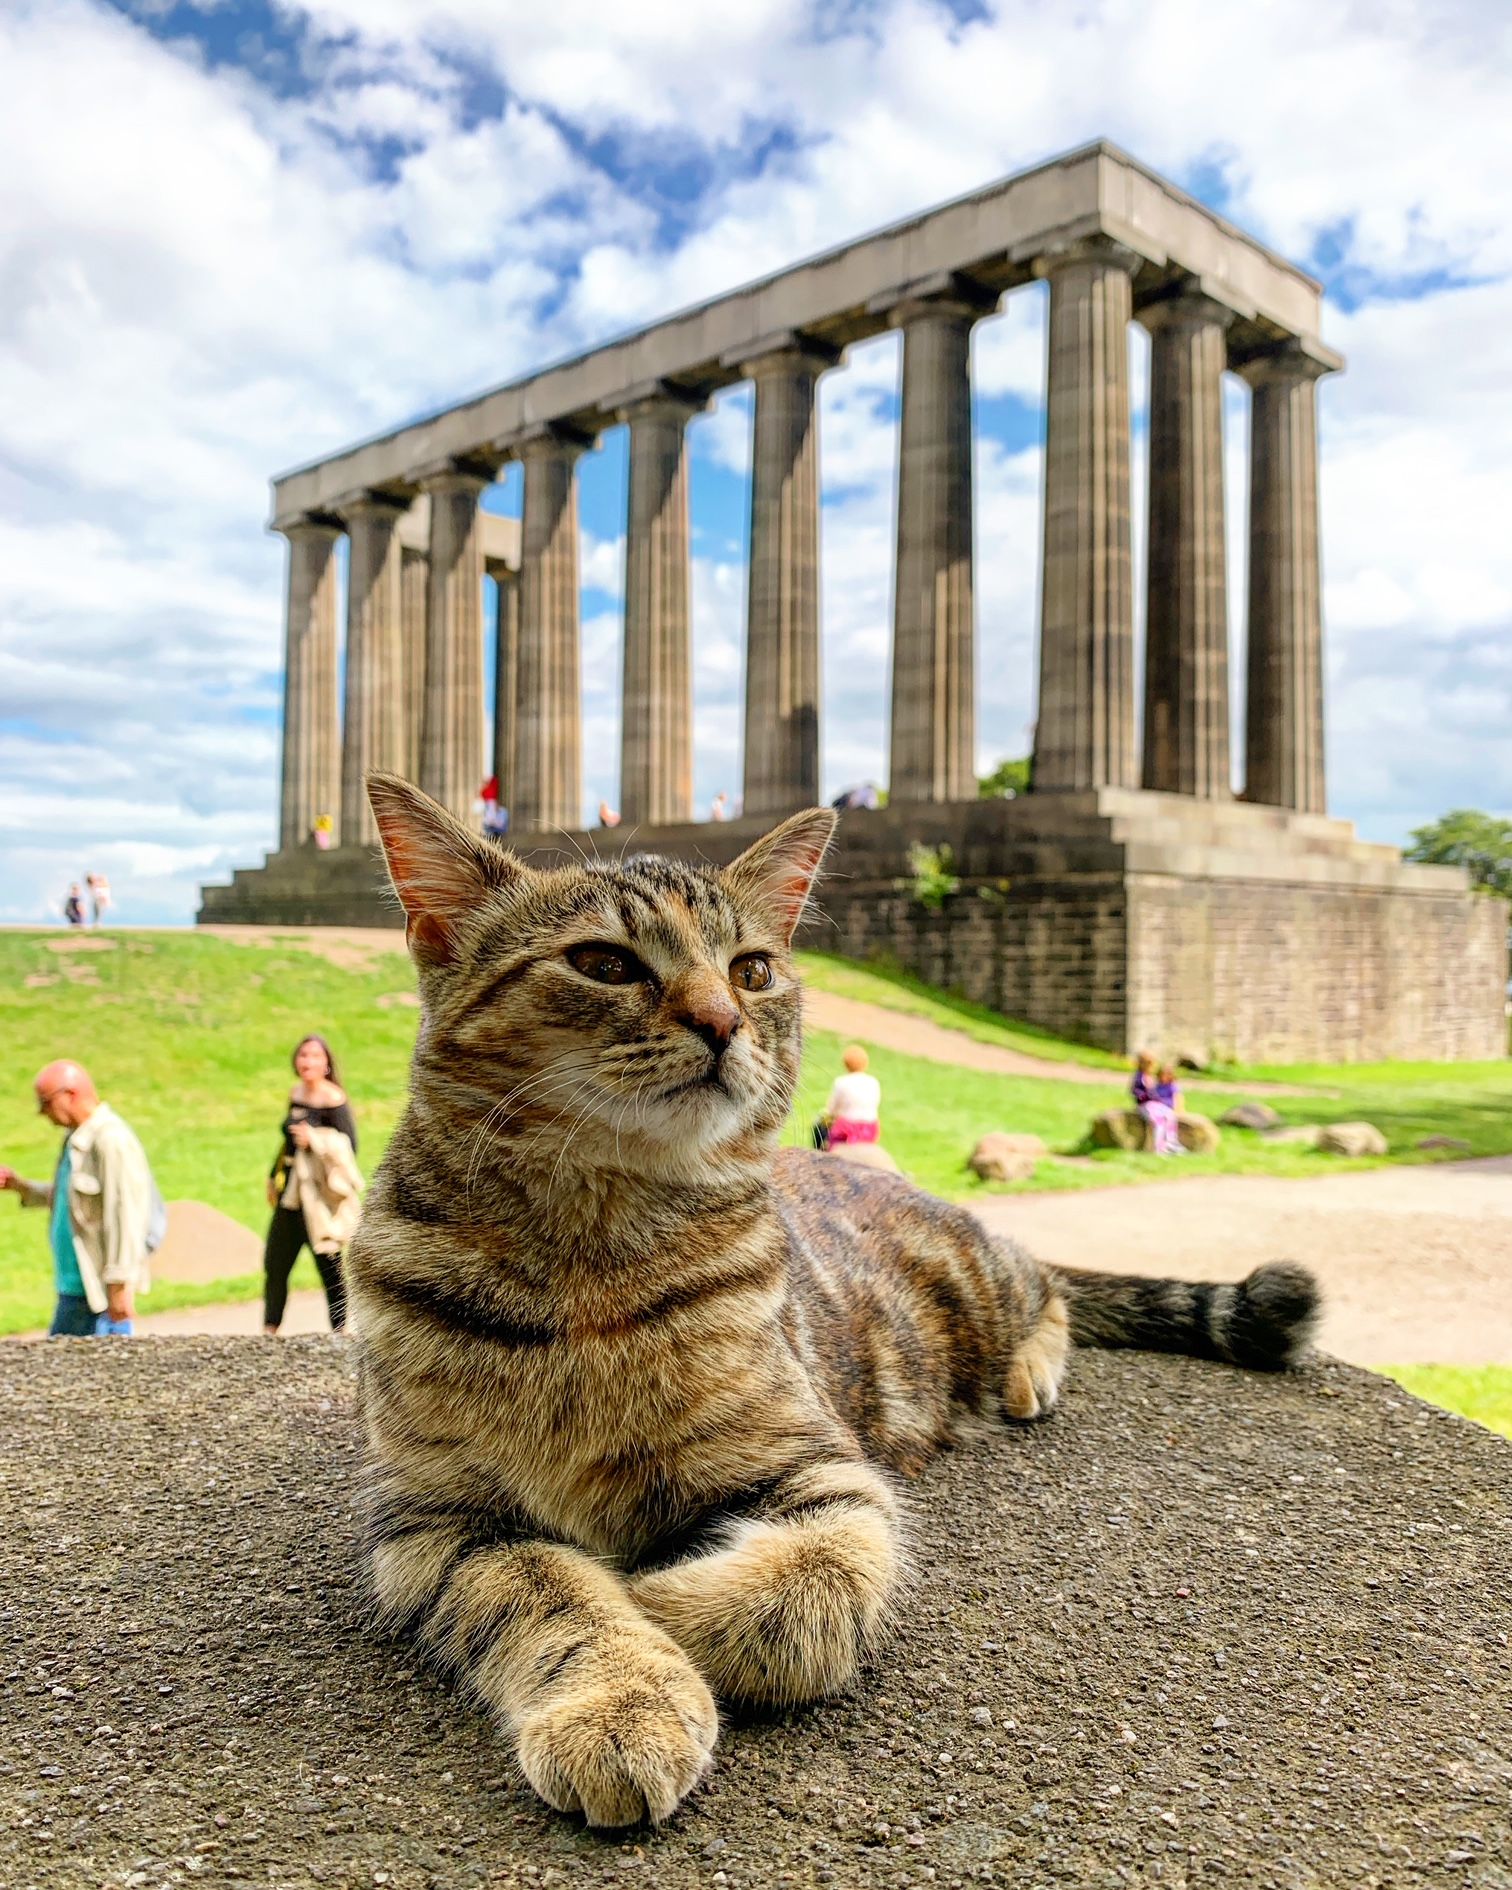 2019-07-19 (Quita the Kitty) National Monument of Scotland